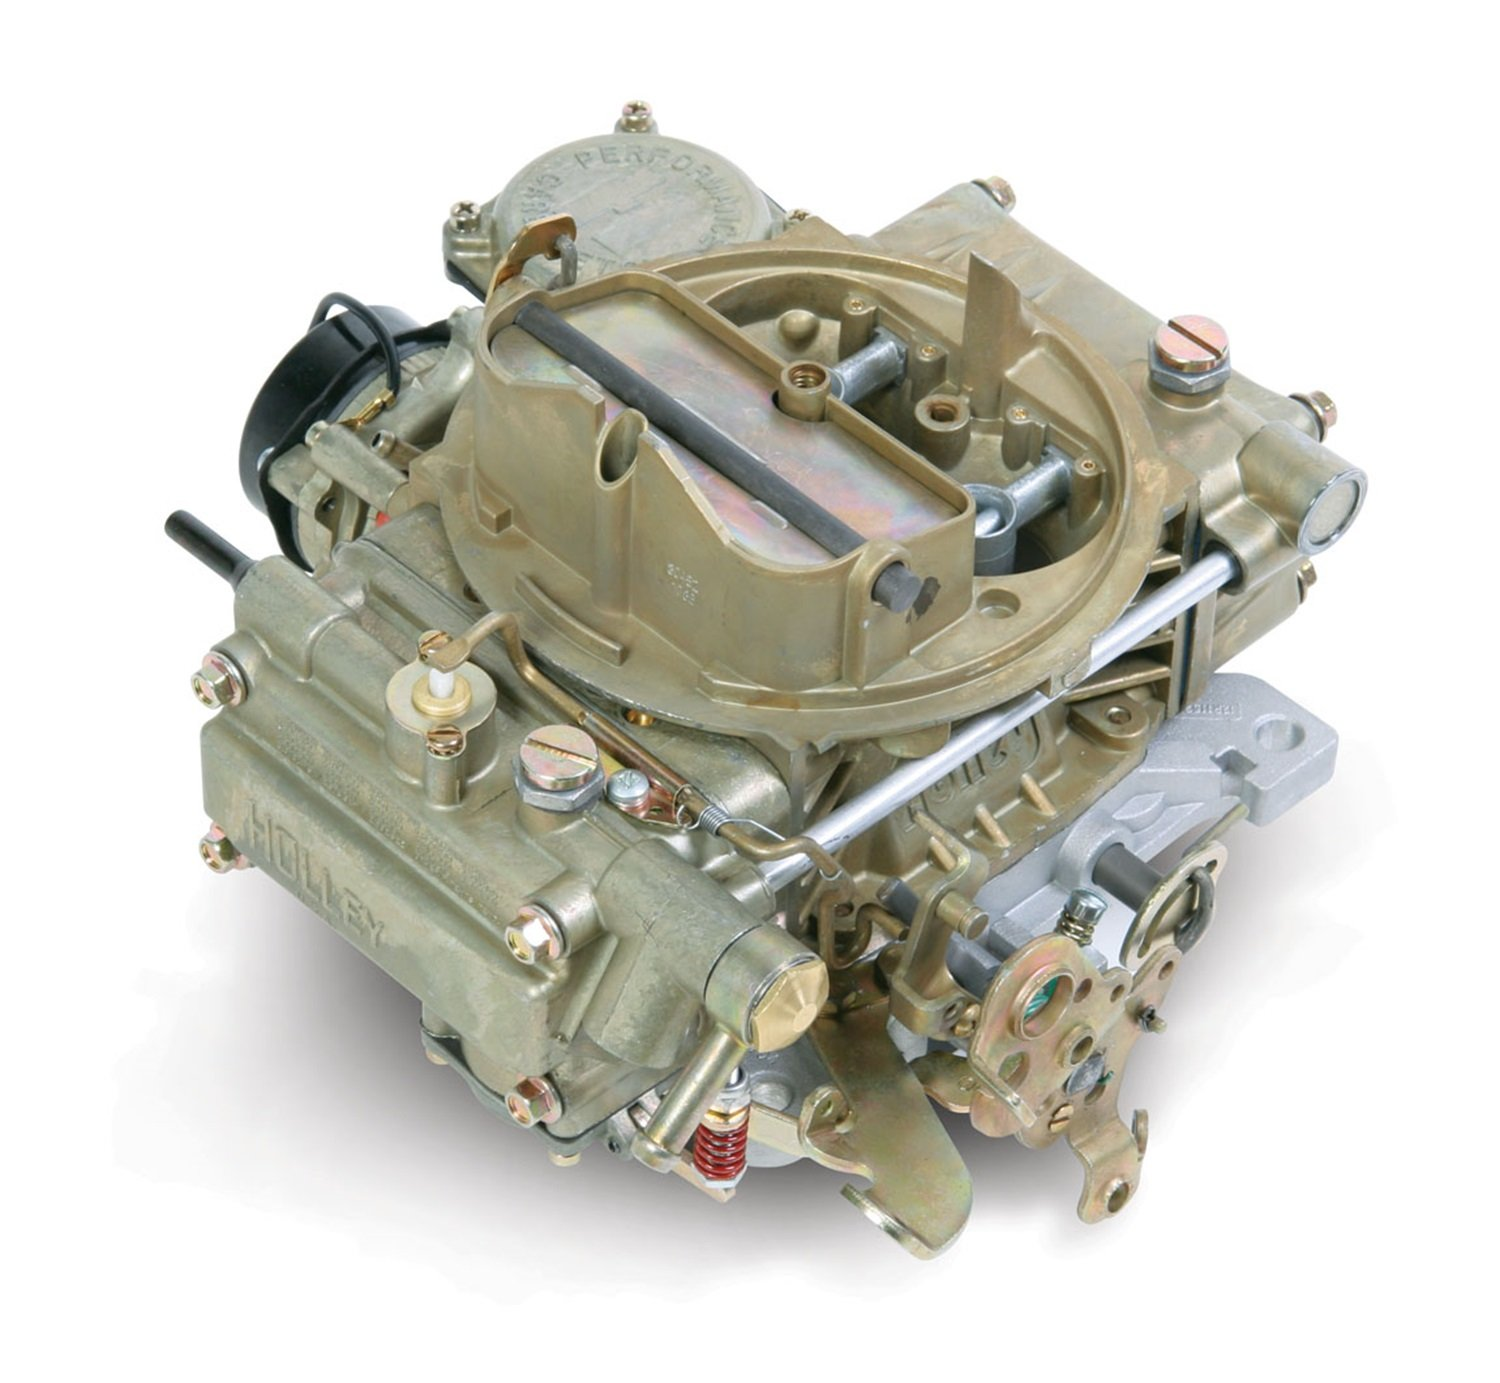 Best Carburetor For Ford 460 Reviews: Top-5 In April 2019